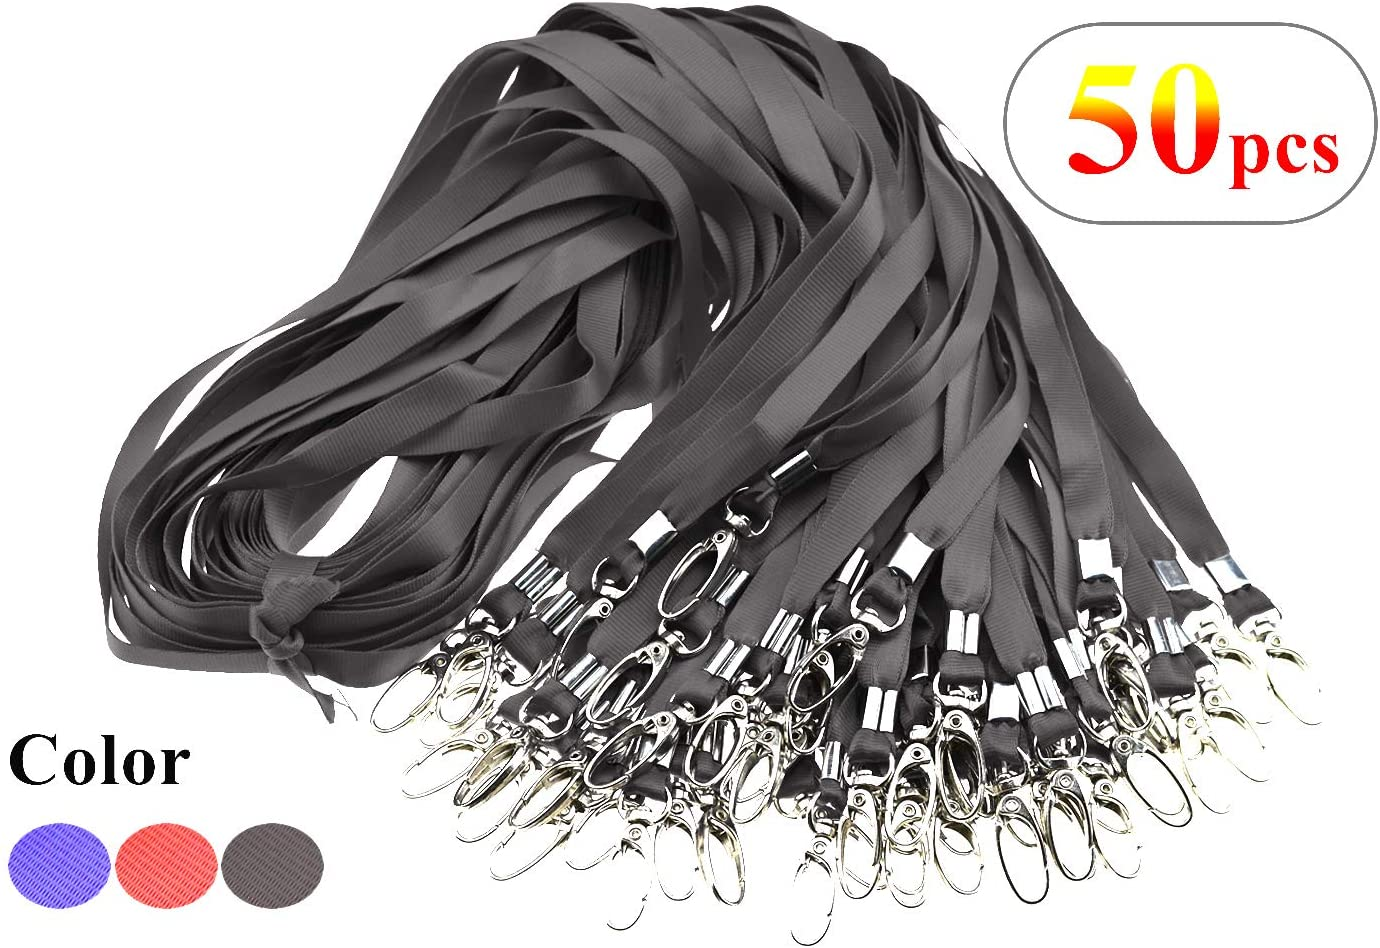 Uohom 50 pcs Safe and Durable Nylon Black Lanyards for Badge Clip